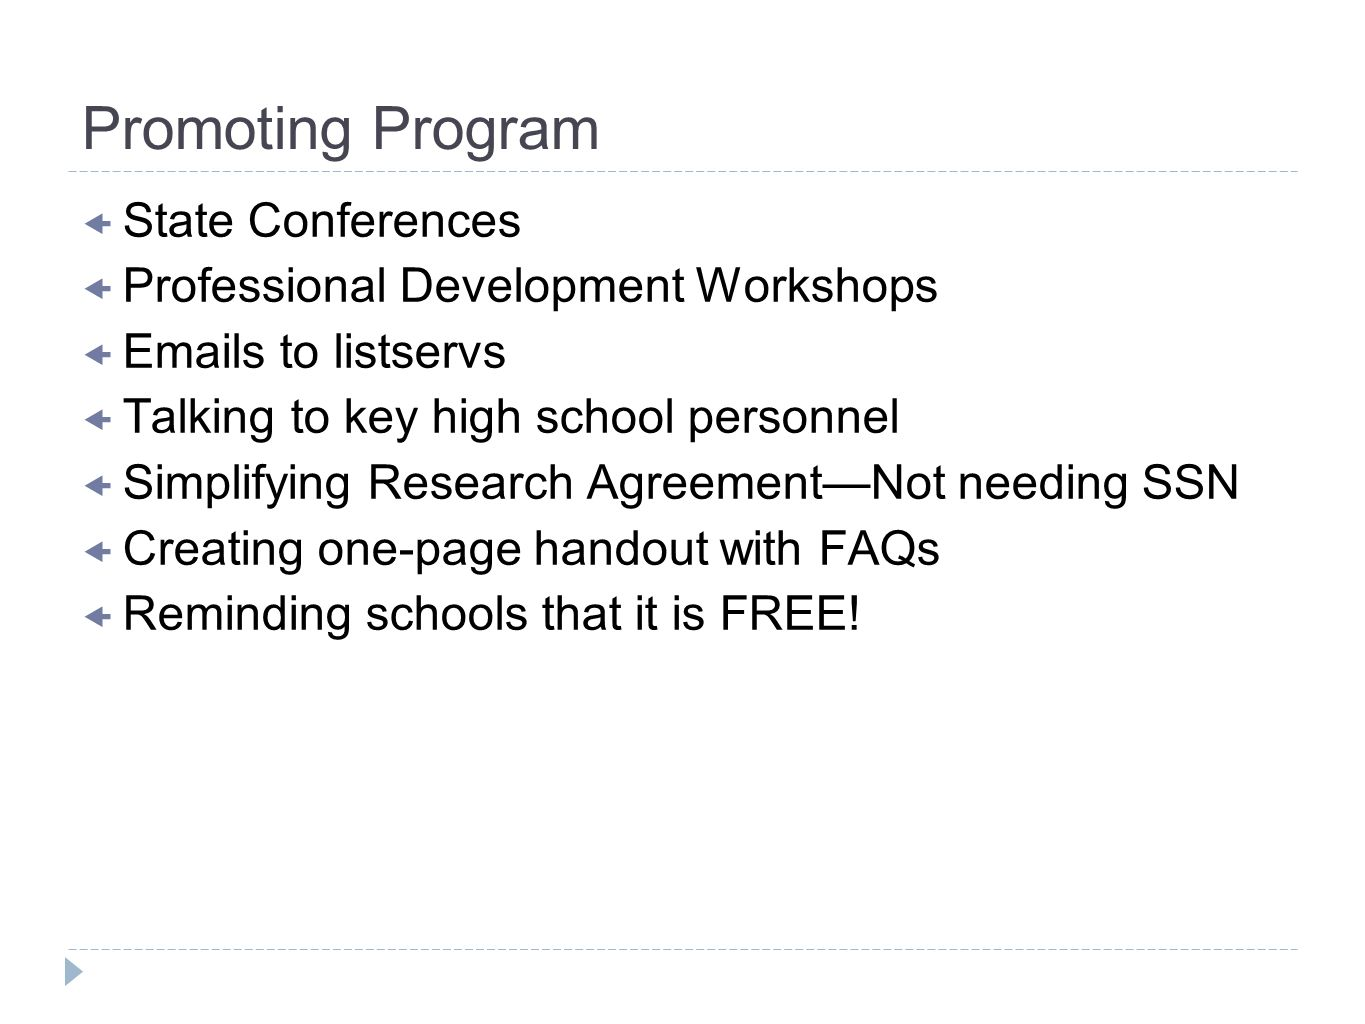 Promoting Program State Conferences Professional Development Workshops Emails to listservs Talking to key high school personnel Simplifying Research AgreementNot needing SSN Creating one-page handout with FAQs Reminding schools that it is FREE!